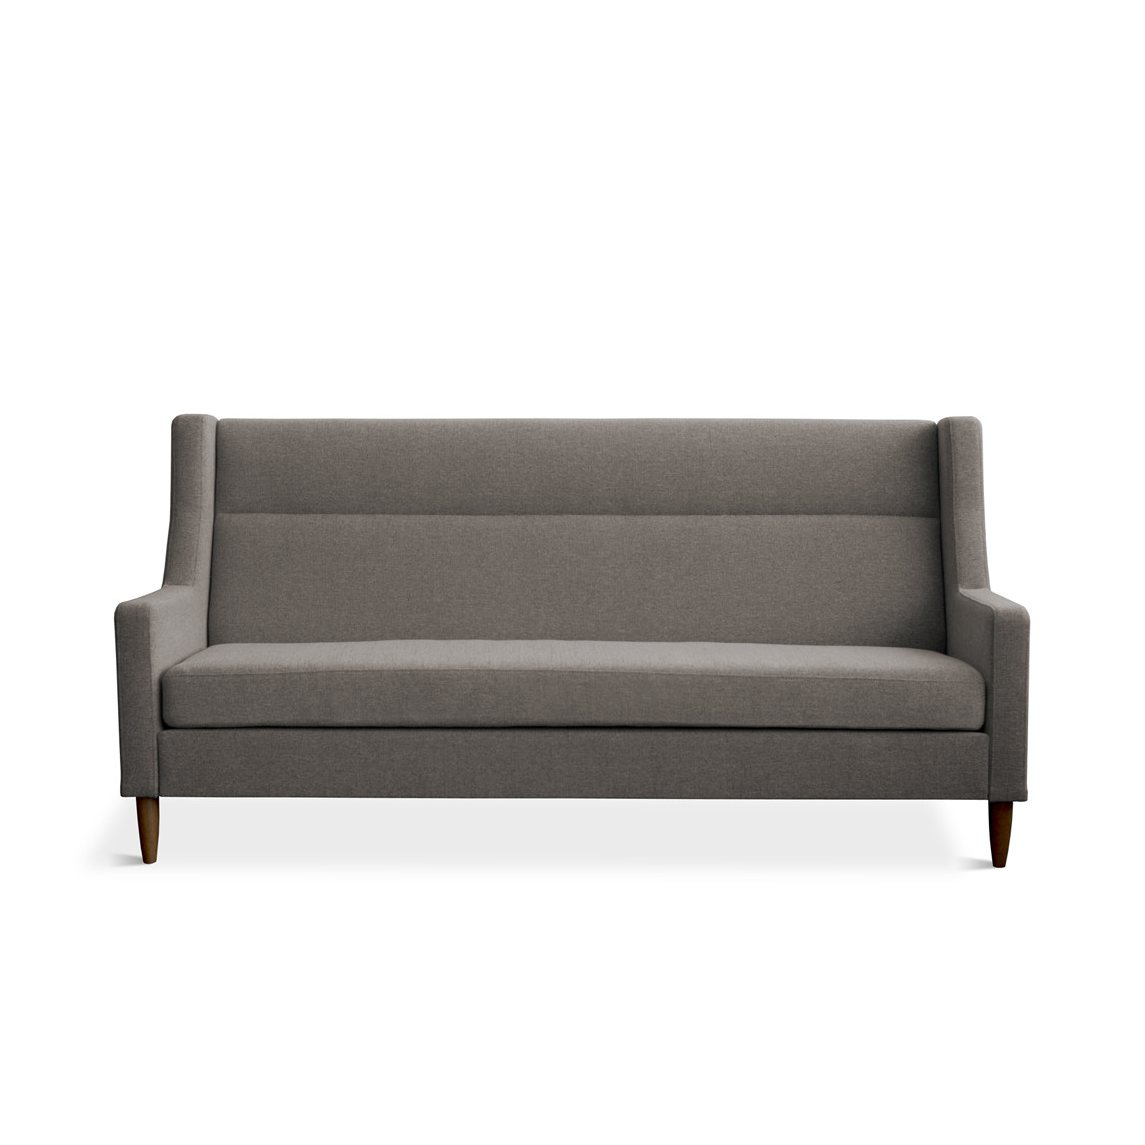 Carmichael loft sofa by gus modern up interiors - Joop loft sofa ...